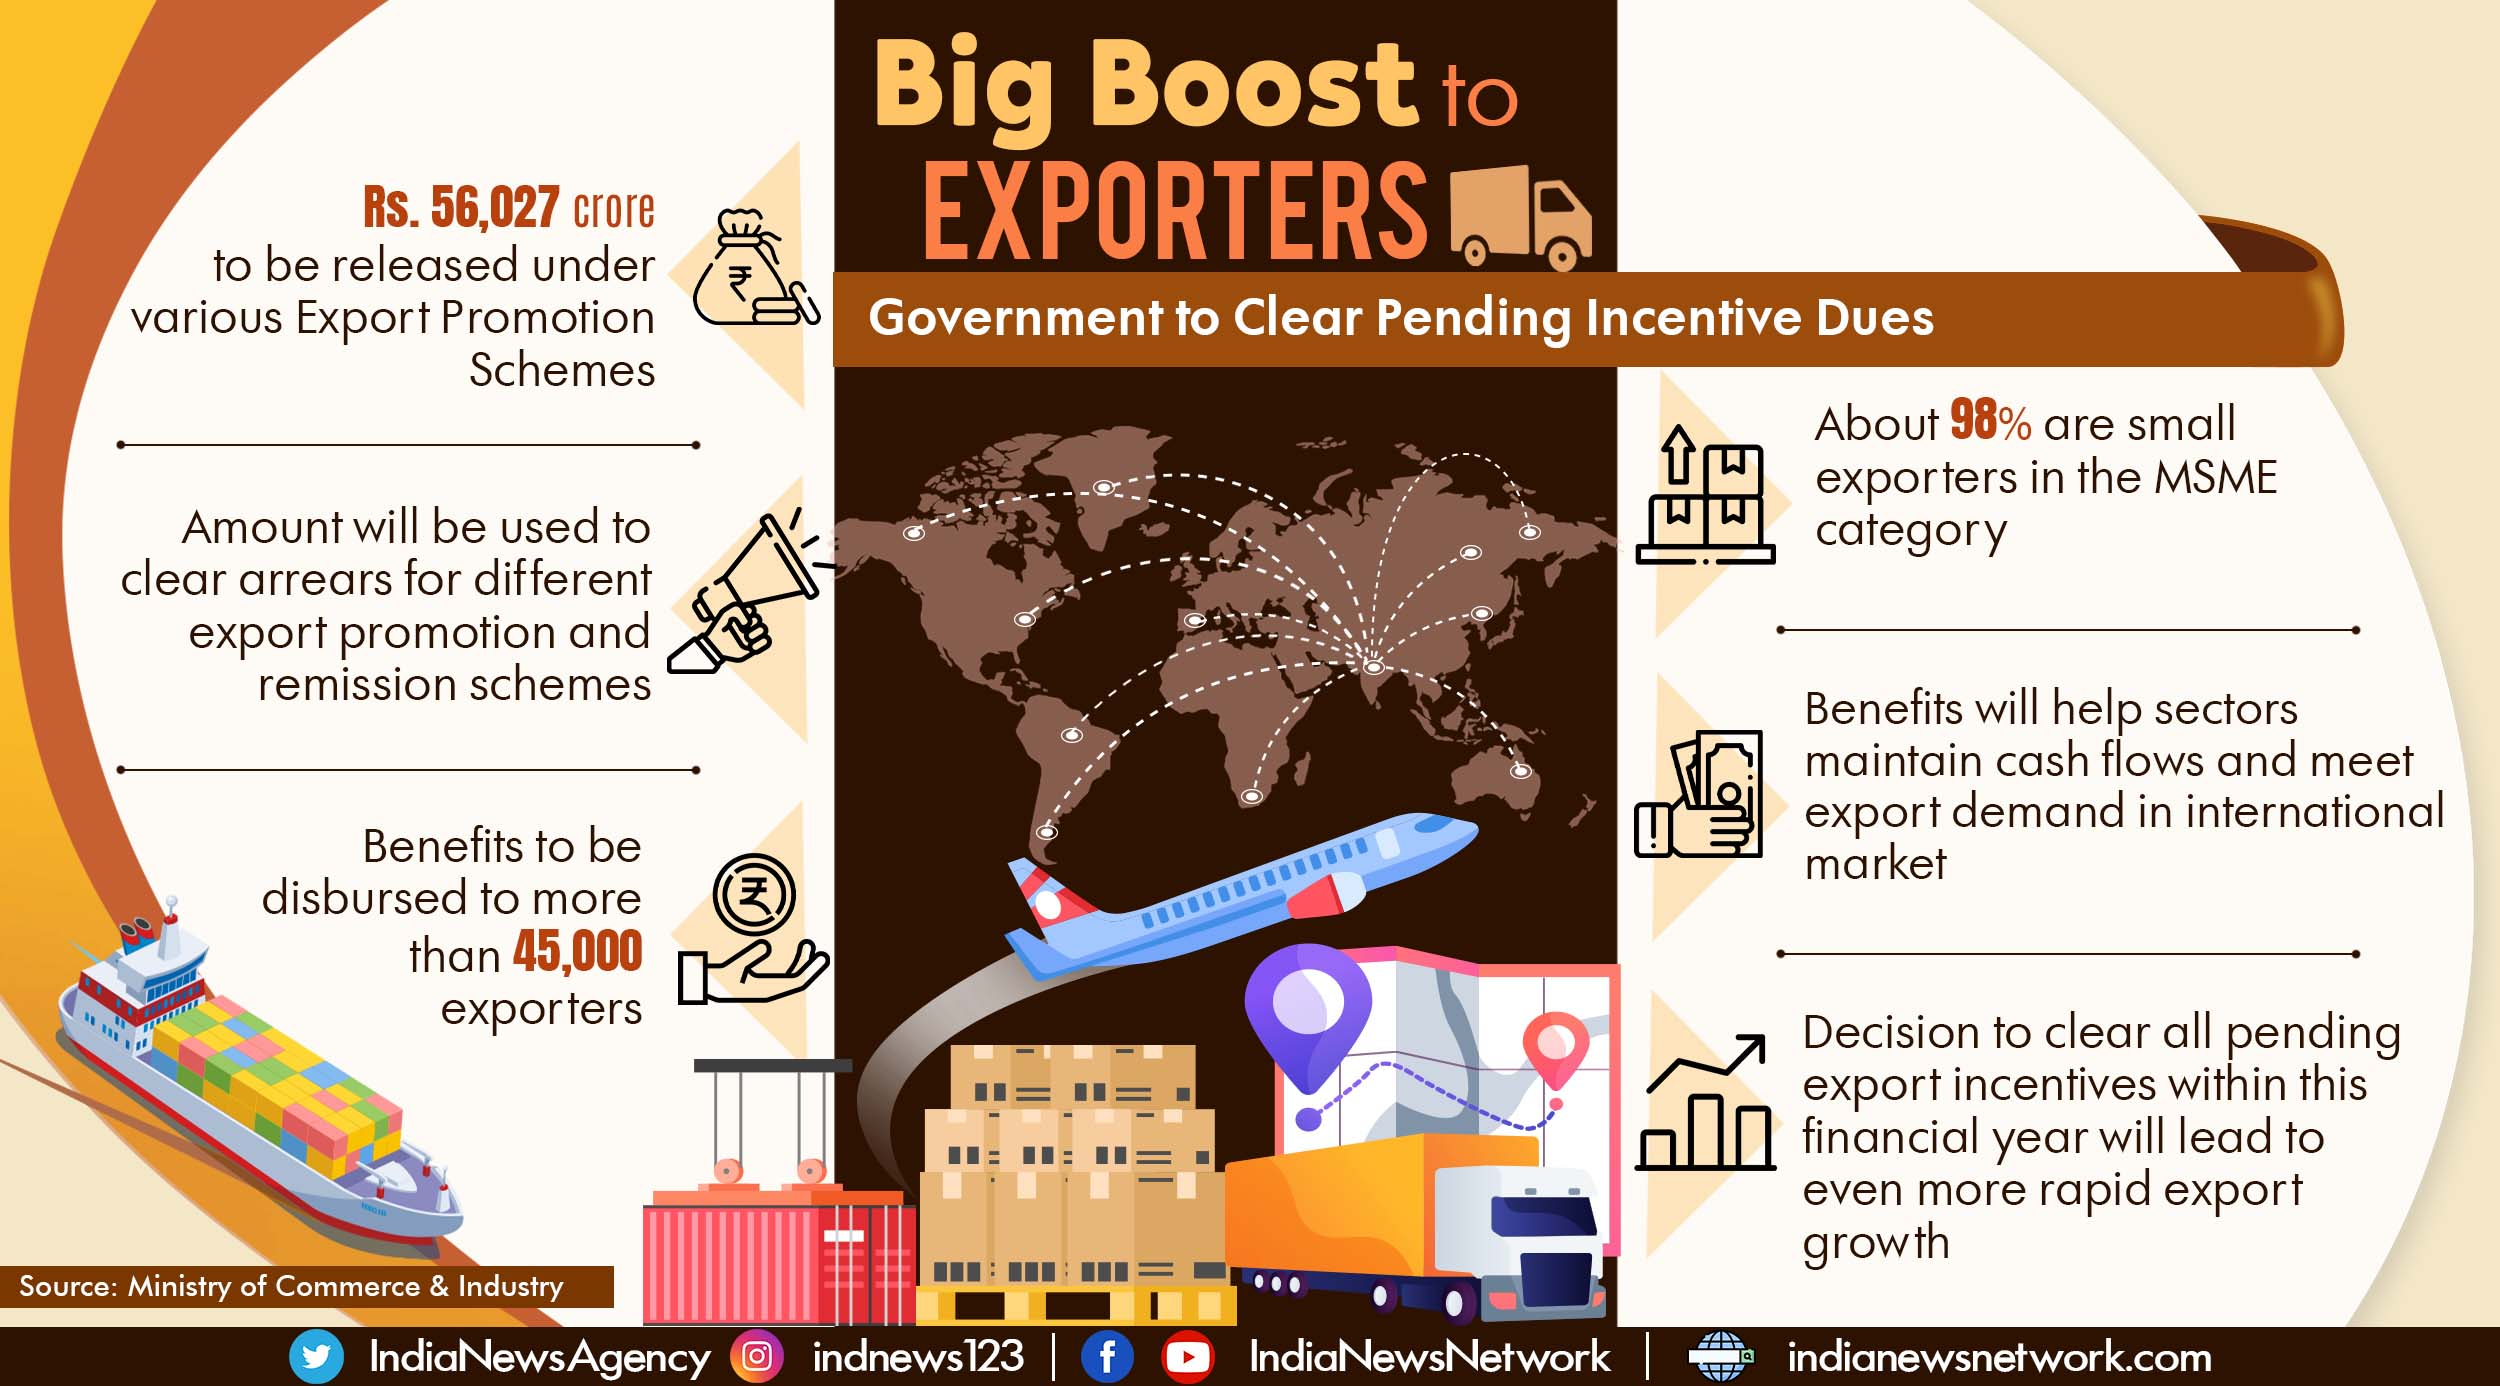 Big boost to exporters: Pending incentive dues to be cleared in FY 2021-22